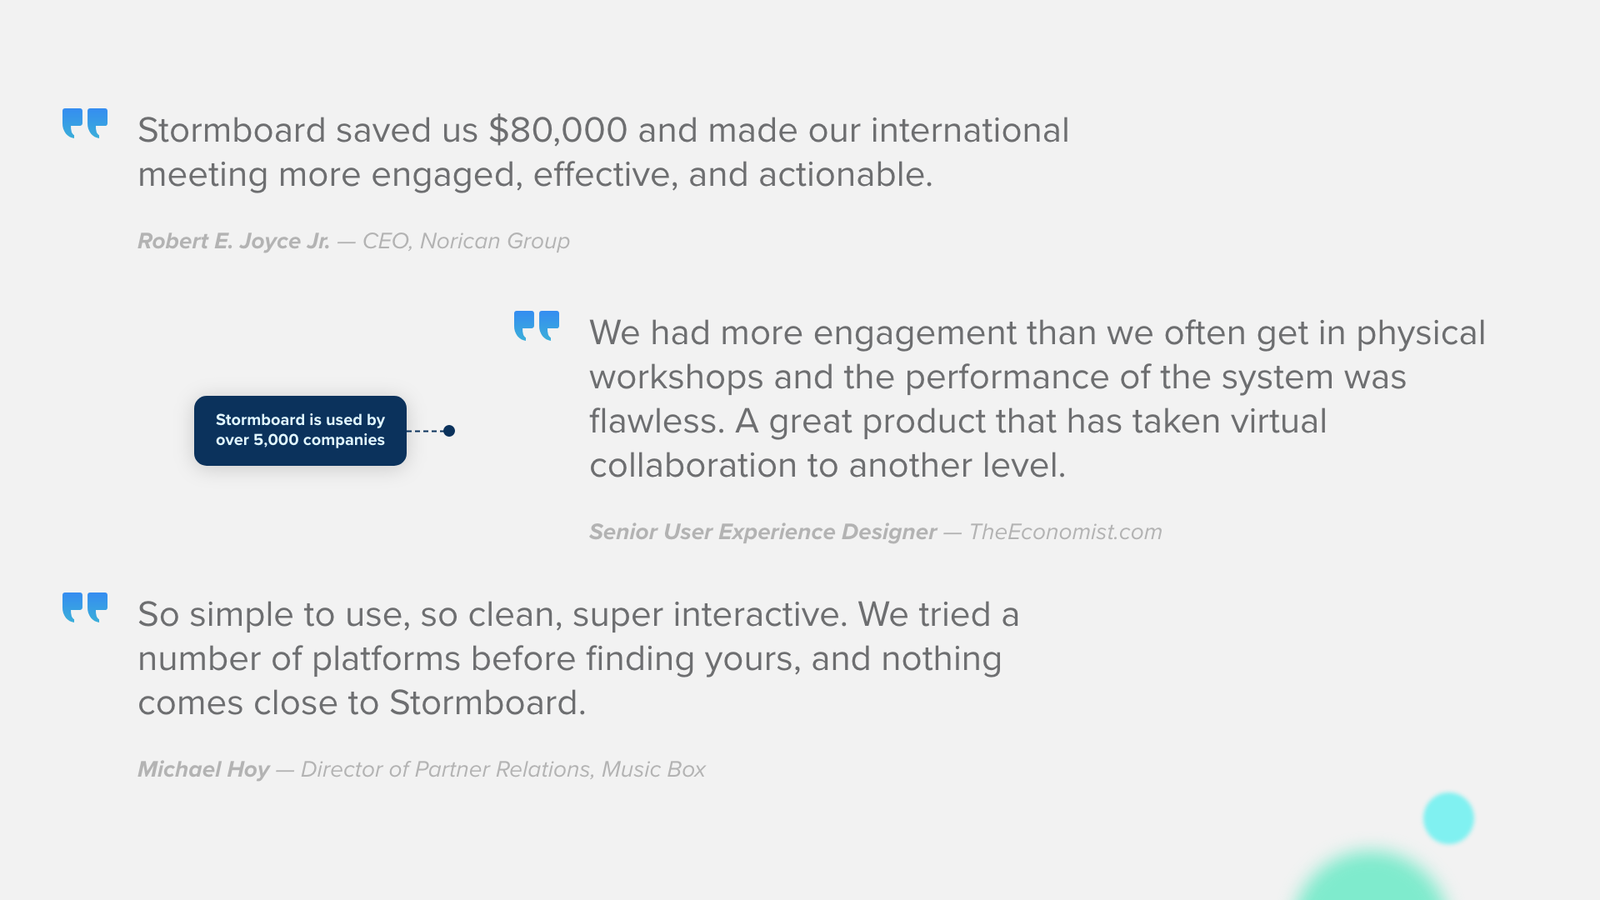 Stormboard is used by over 5,000 companies